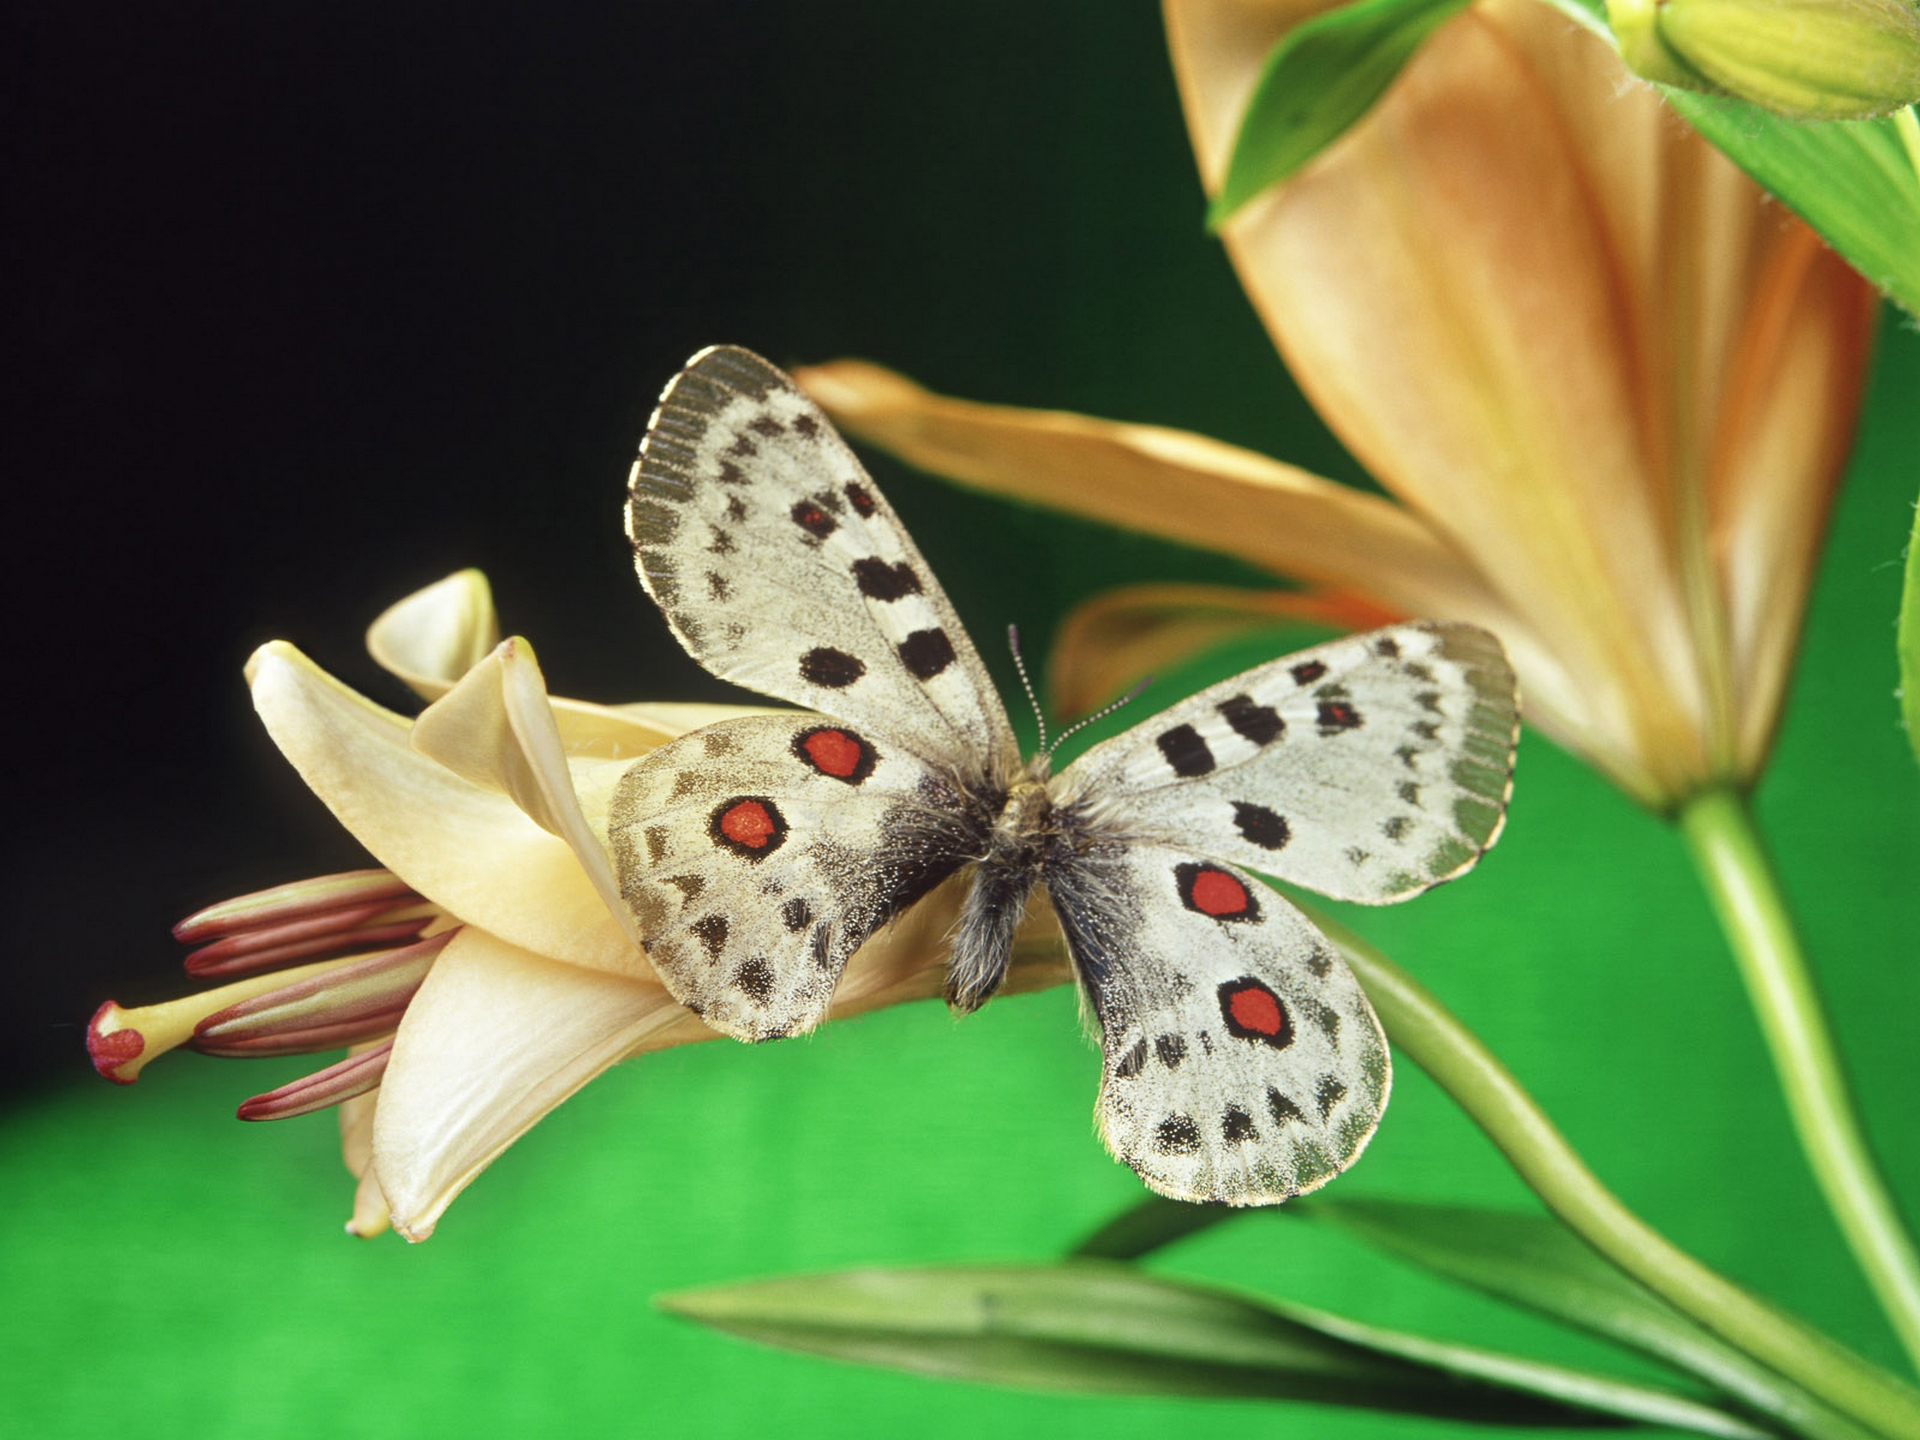 Butterfly High Quality Wallpapers